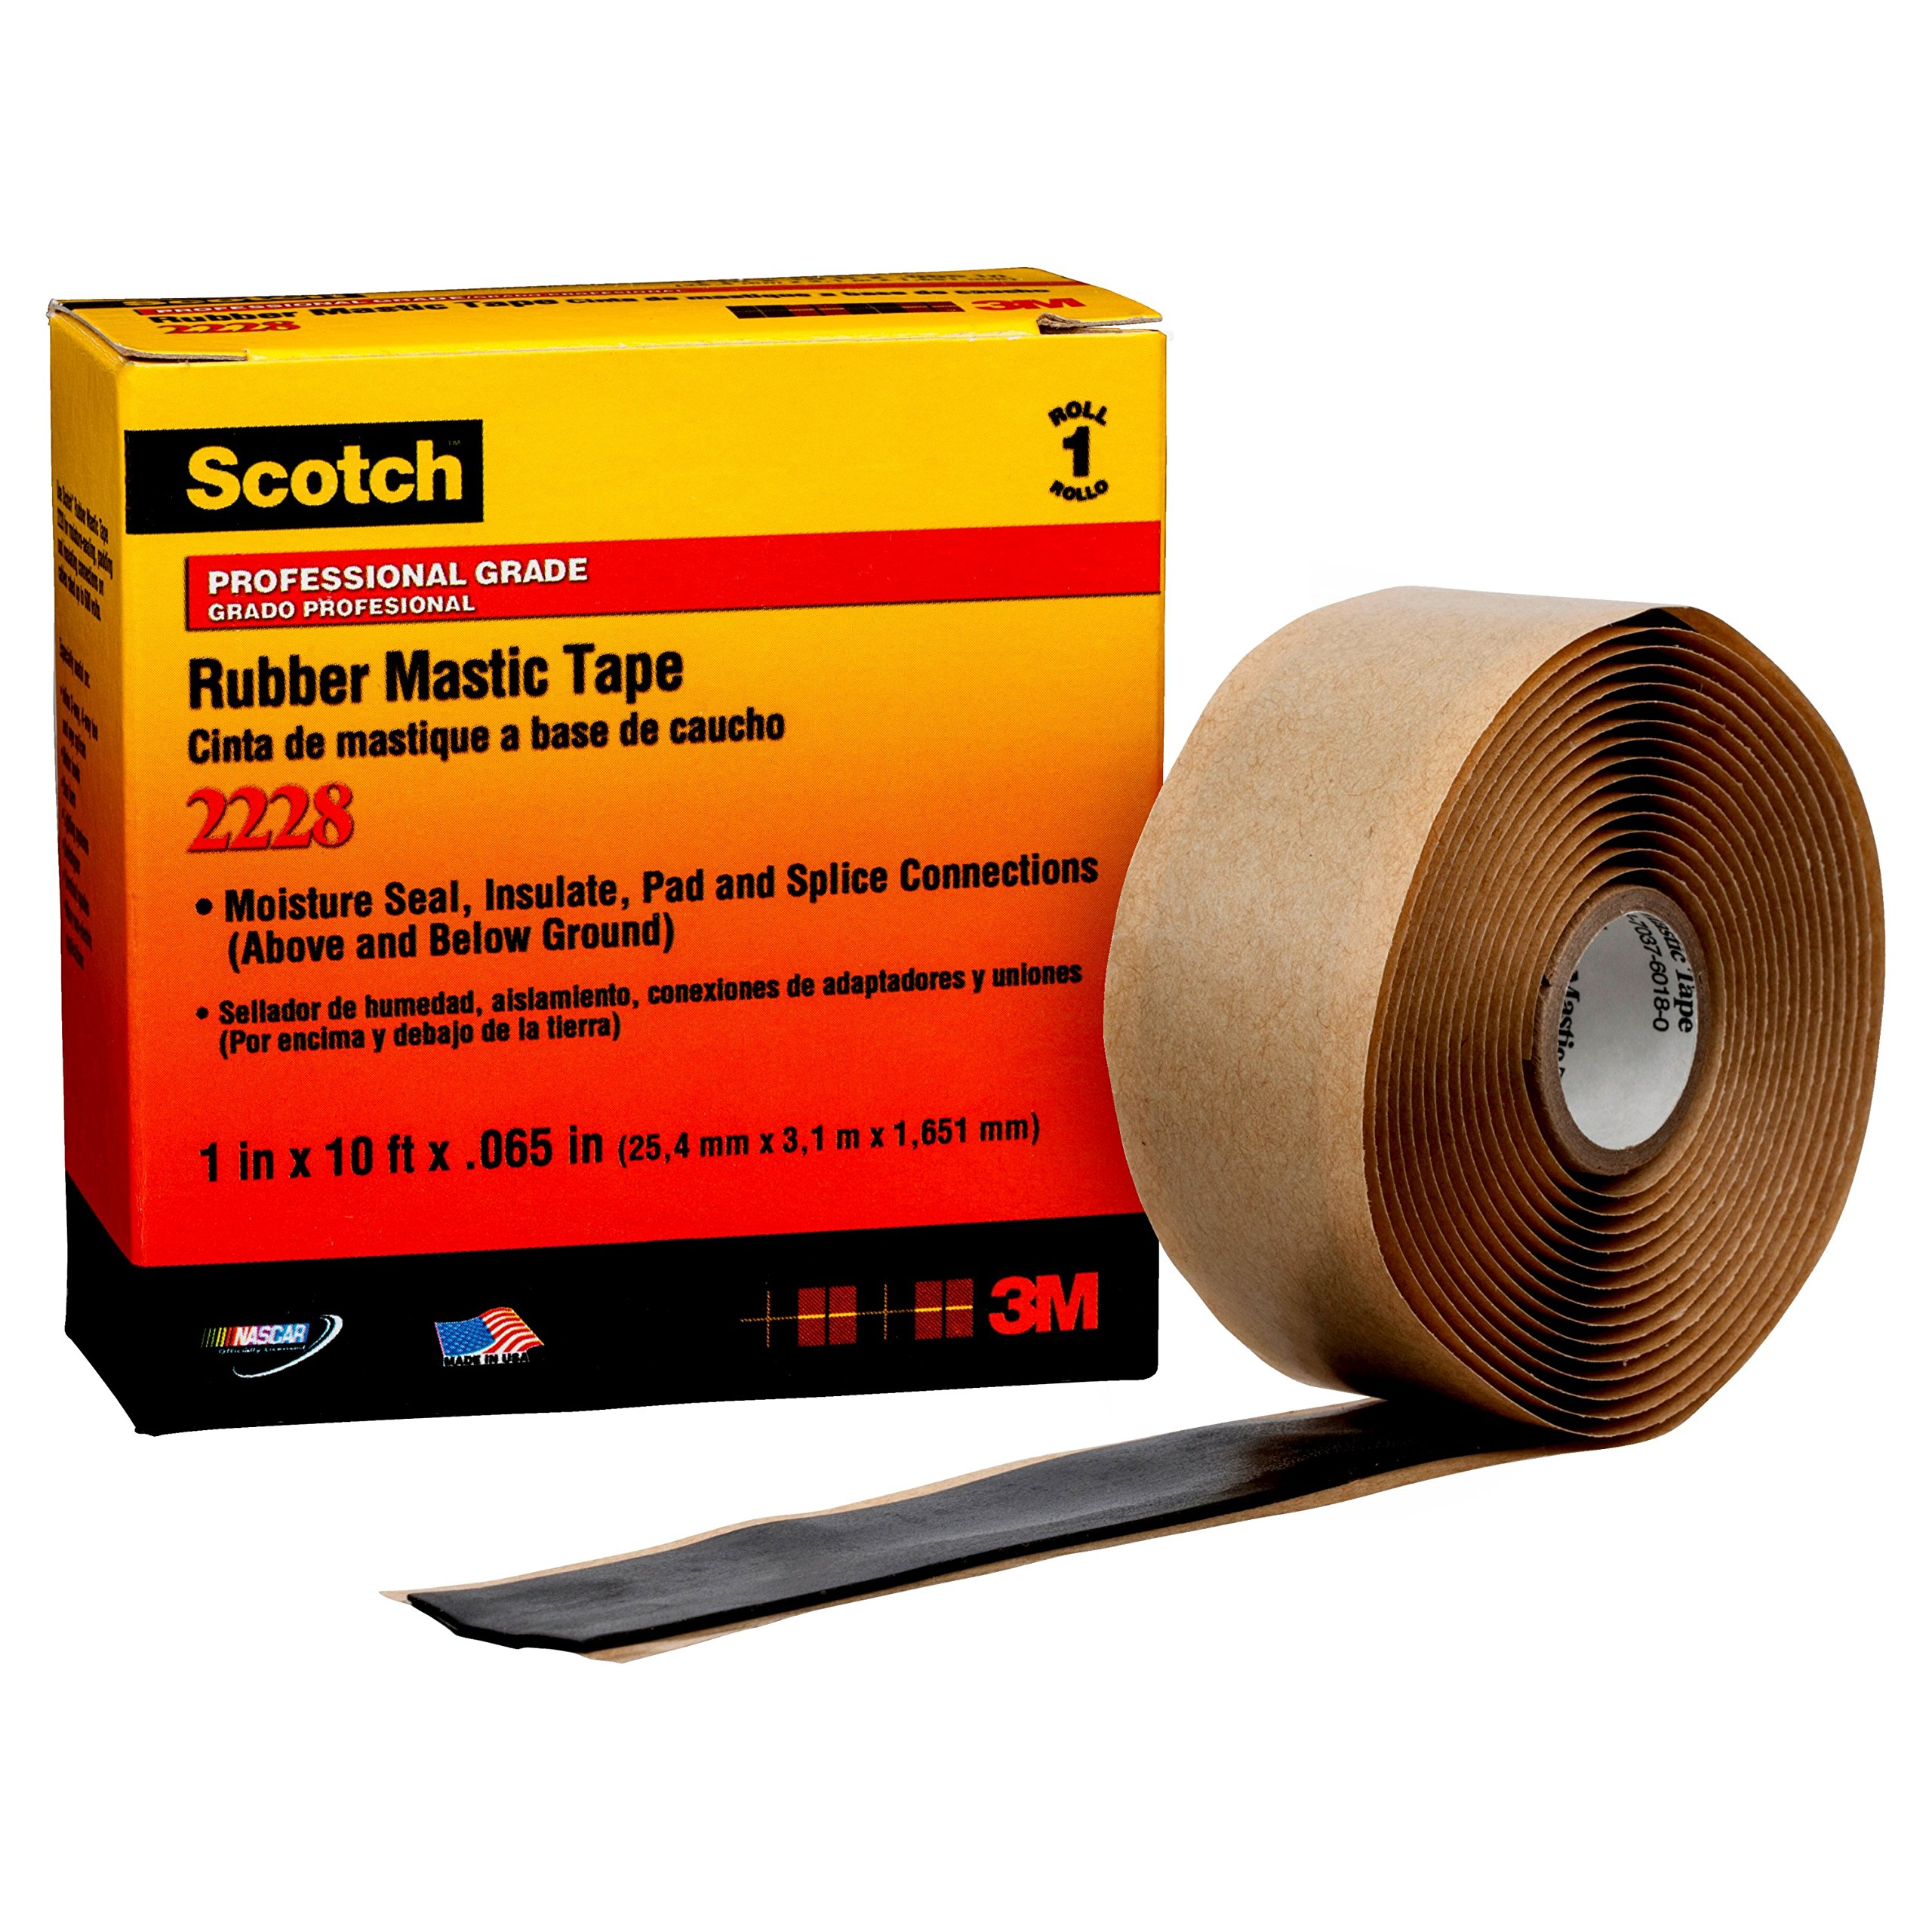 3m 2228 Scotch Moisture Sealing Electrical Tape 1 In X Outdoor Boxes Use Rubber Gaskets To Seal Out Weather 10 Ft 065 Industrial Scientific